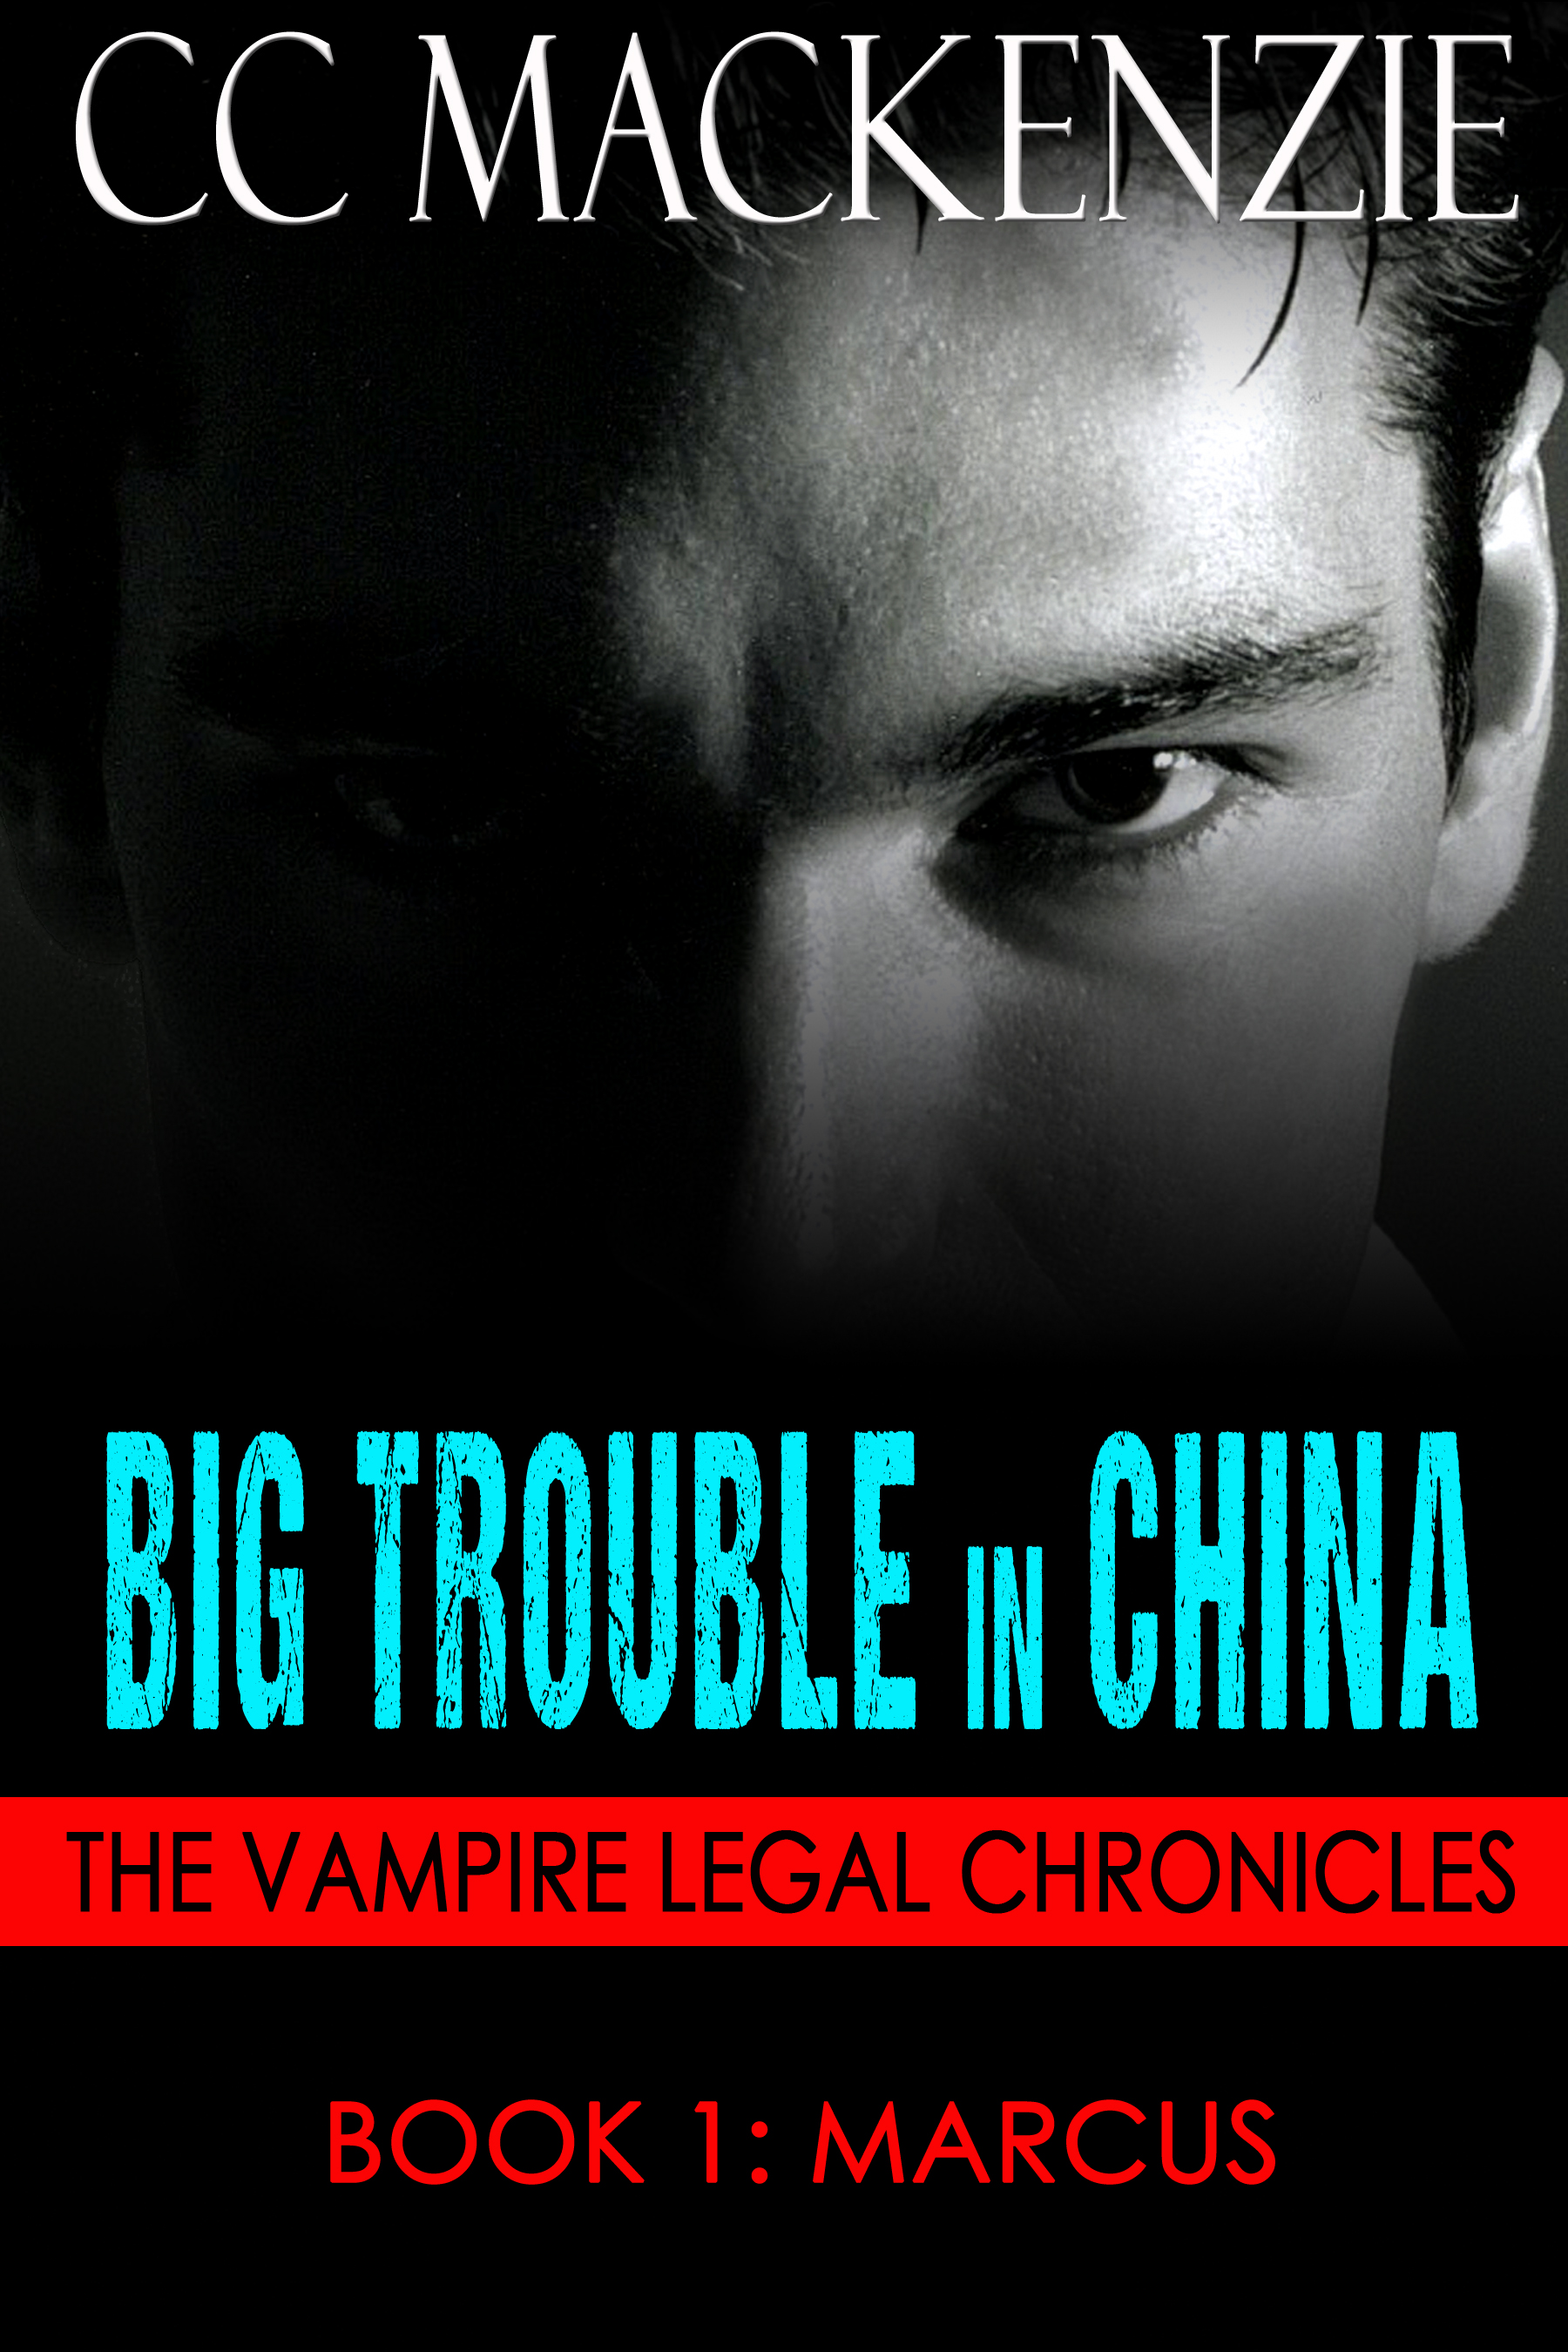 Paranormal series cc mackenzie usa today bestselling author vampyre legal chronicles designed by the lovely gabrielle prendergast of cover your dreams and i promise book three will be here as soon as possible fandeluxe Images